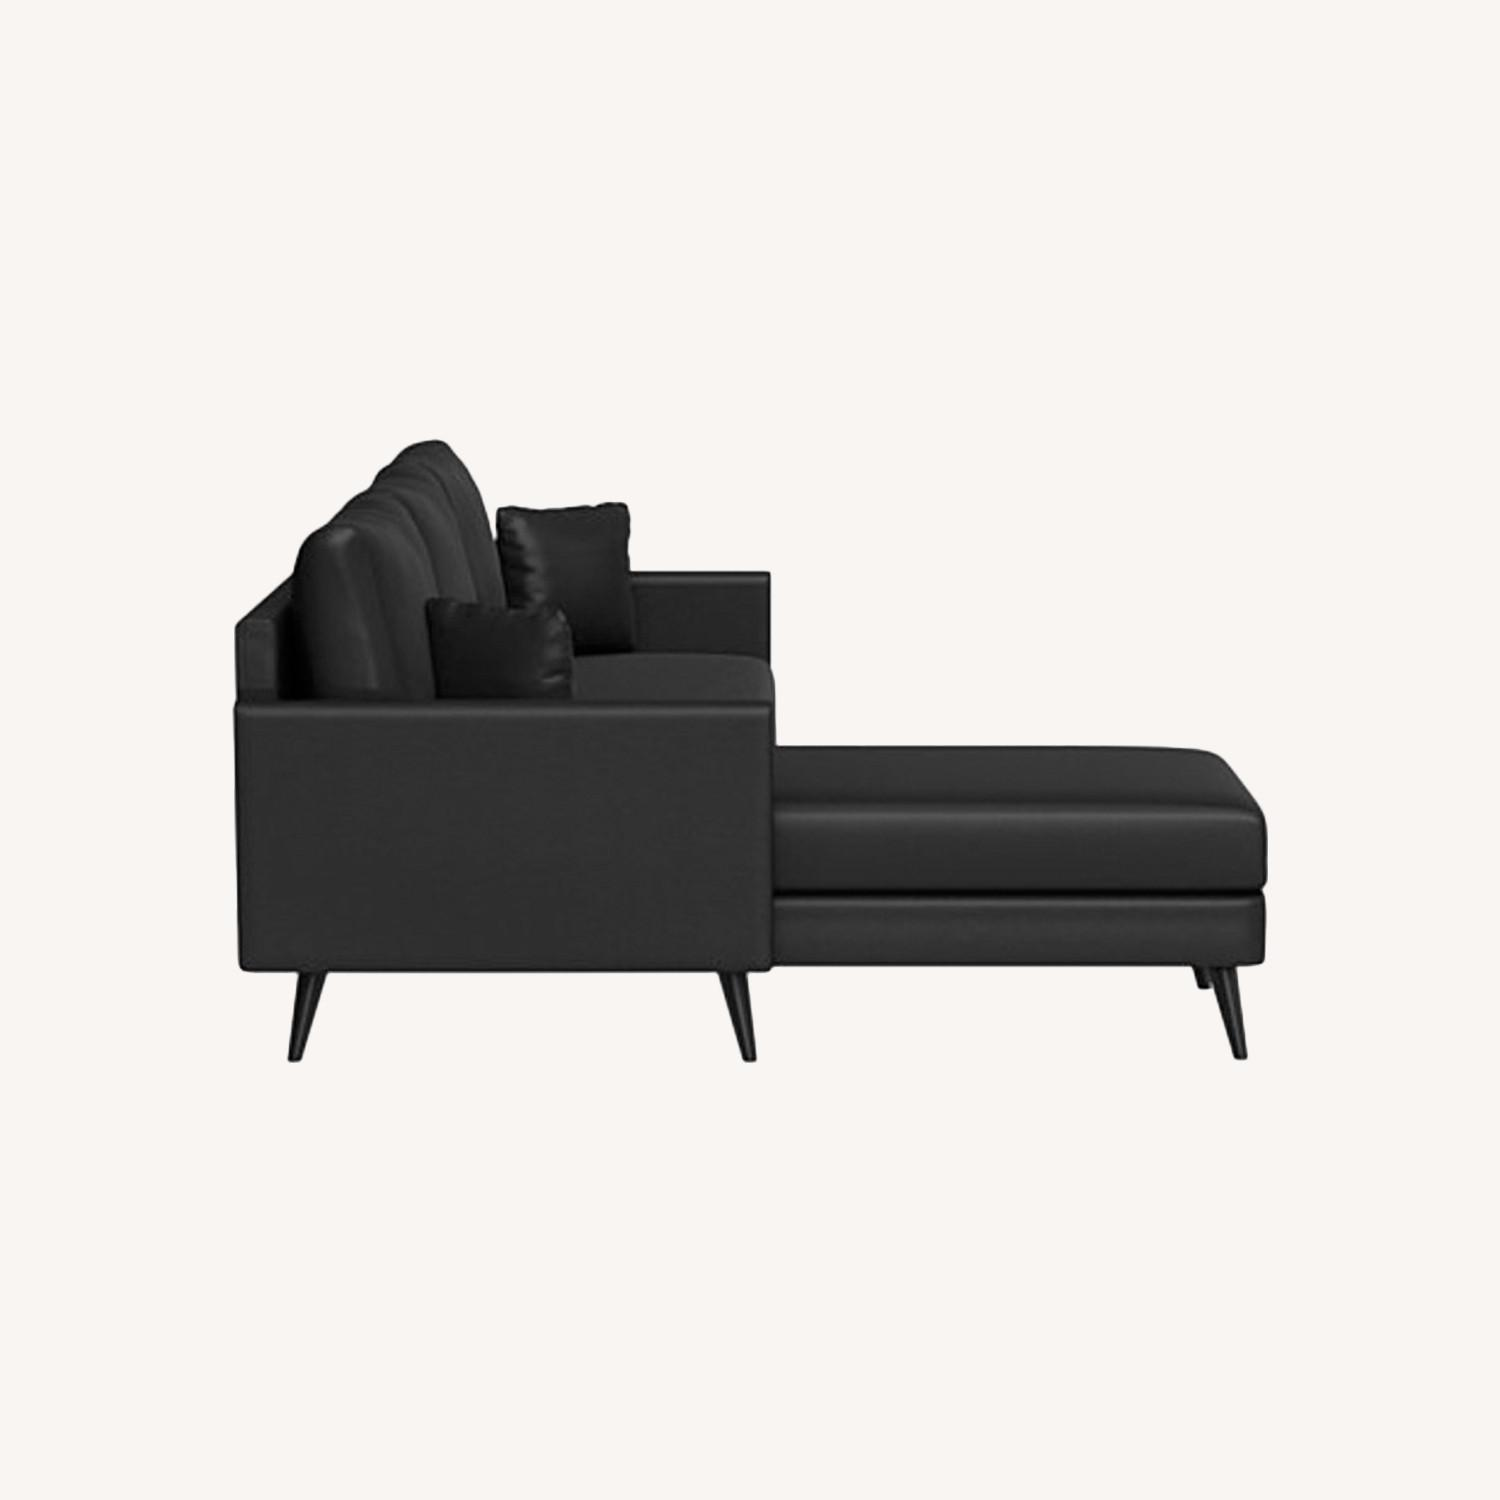 Inside Weather Custom Issa Sectional in Onyx - image-0